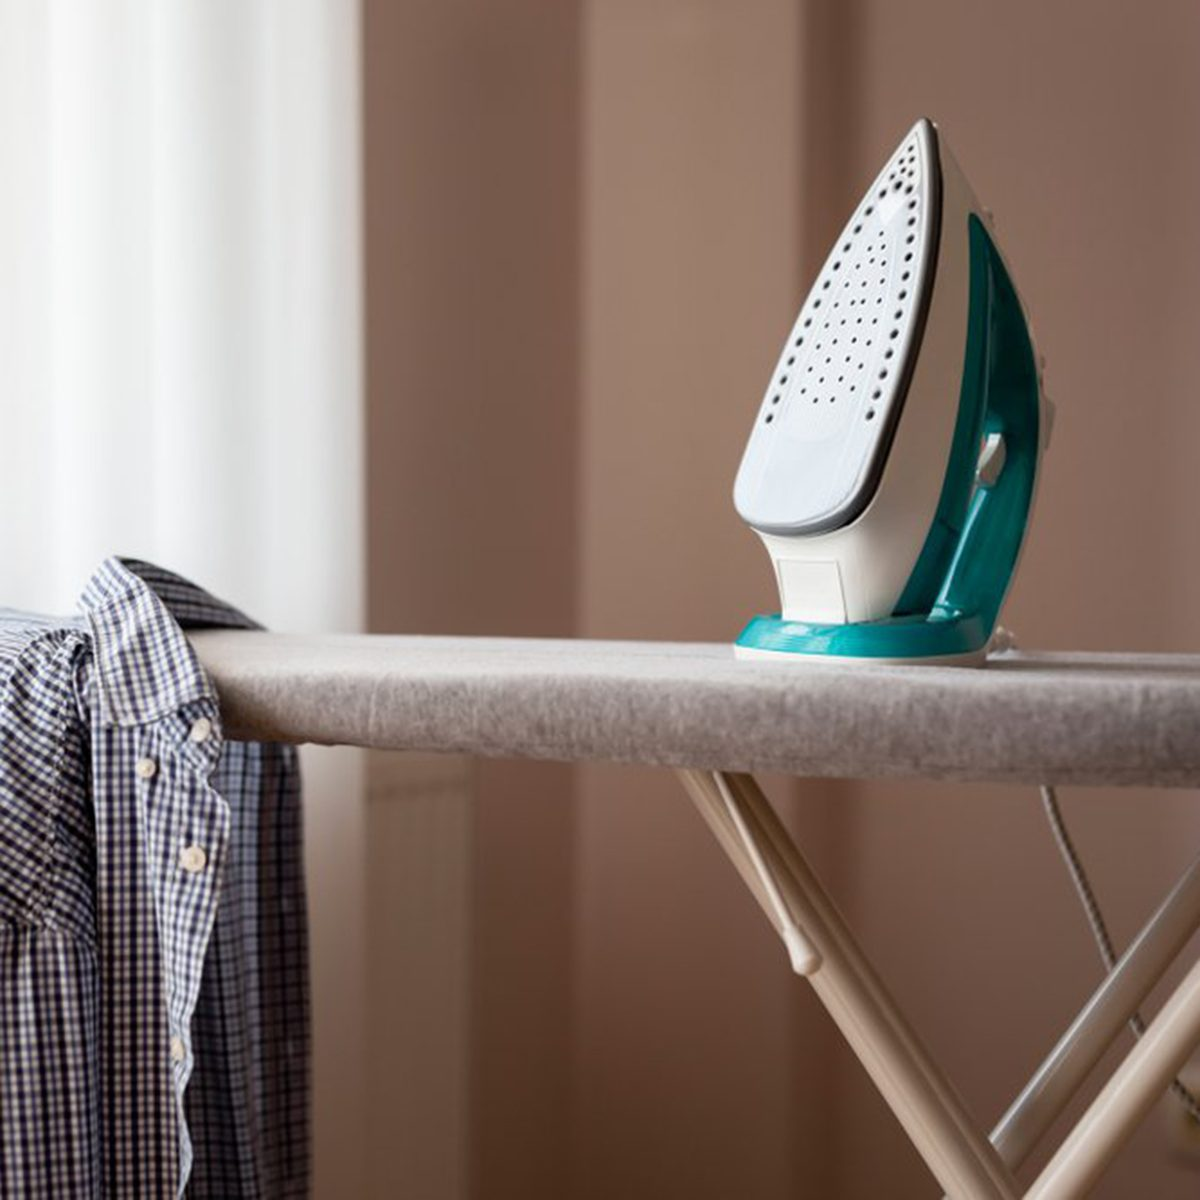 Iron on ironing board with shirt